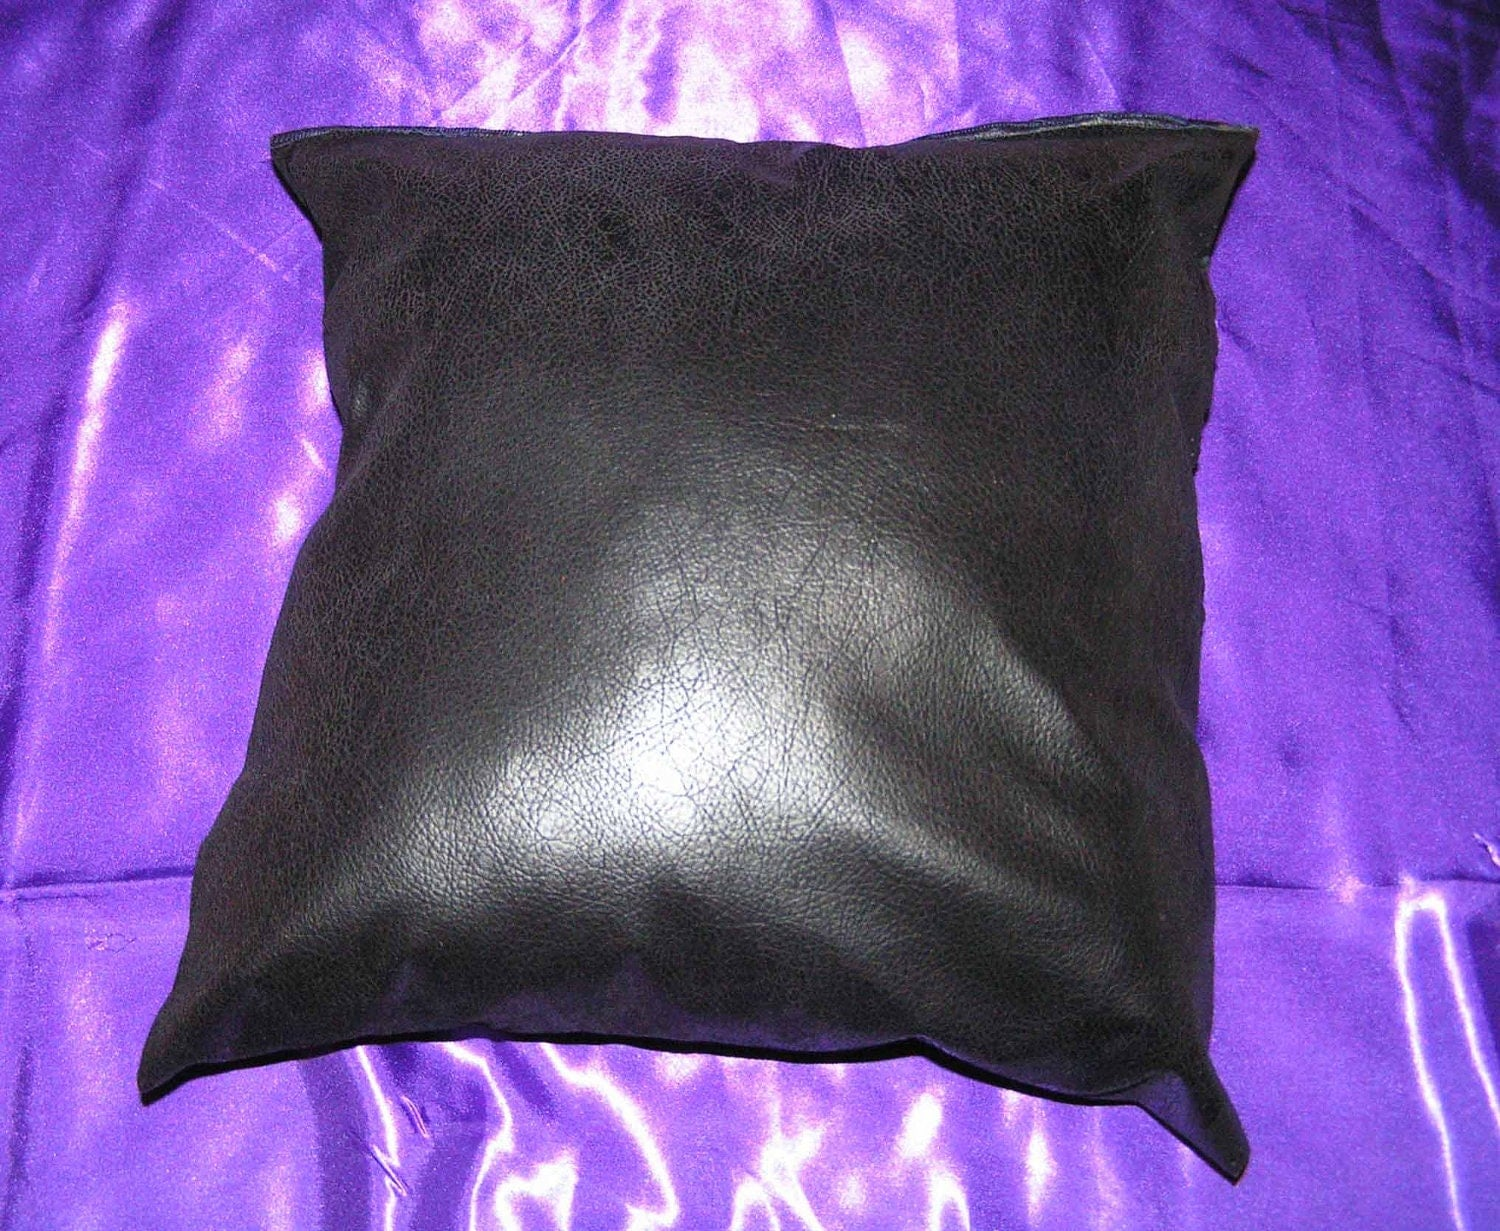 Throw Pillows Faux Leather : 2 faux leather 16 x 16 throw pillow cover zipper closure